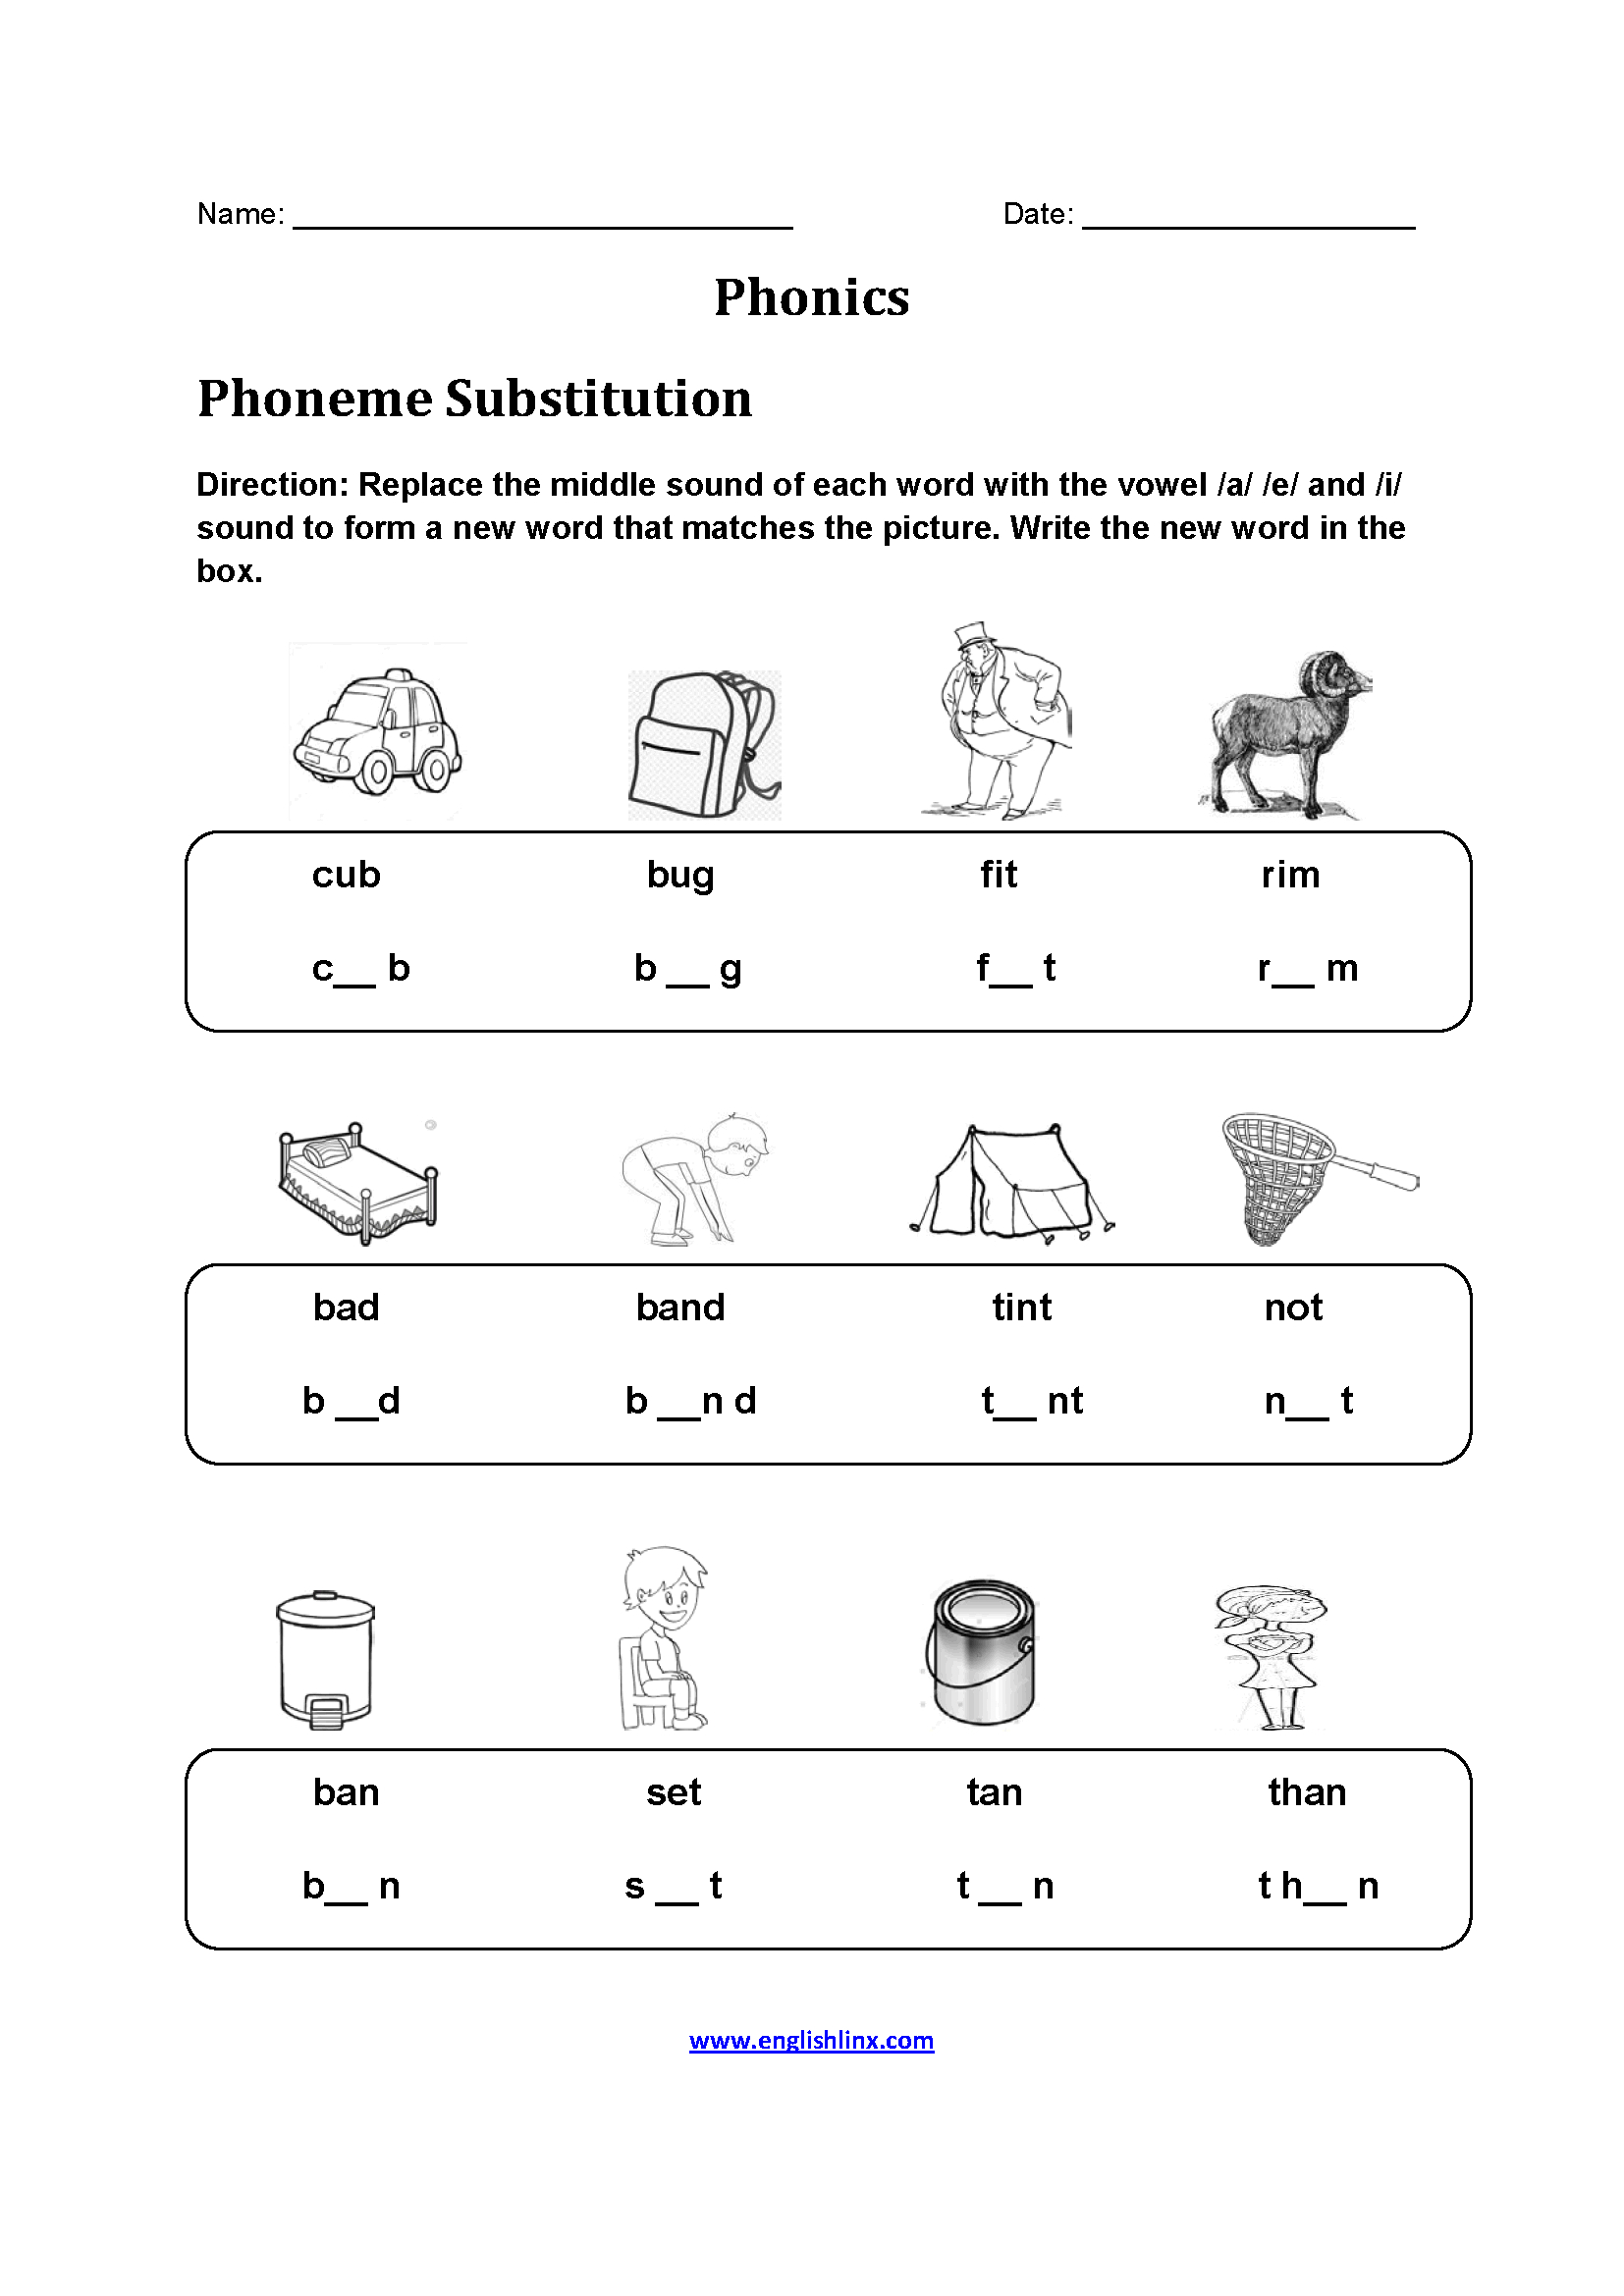 Free Printable Phonics Worksheets For 4th Grade